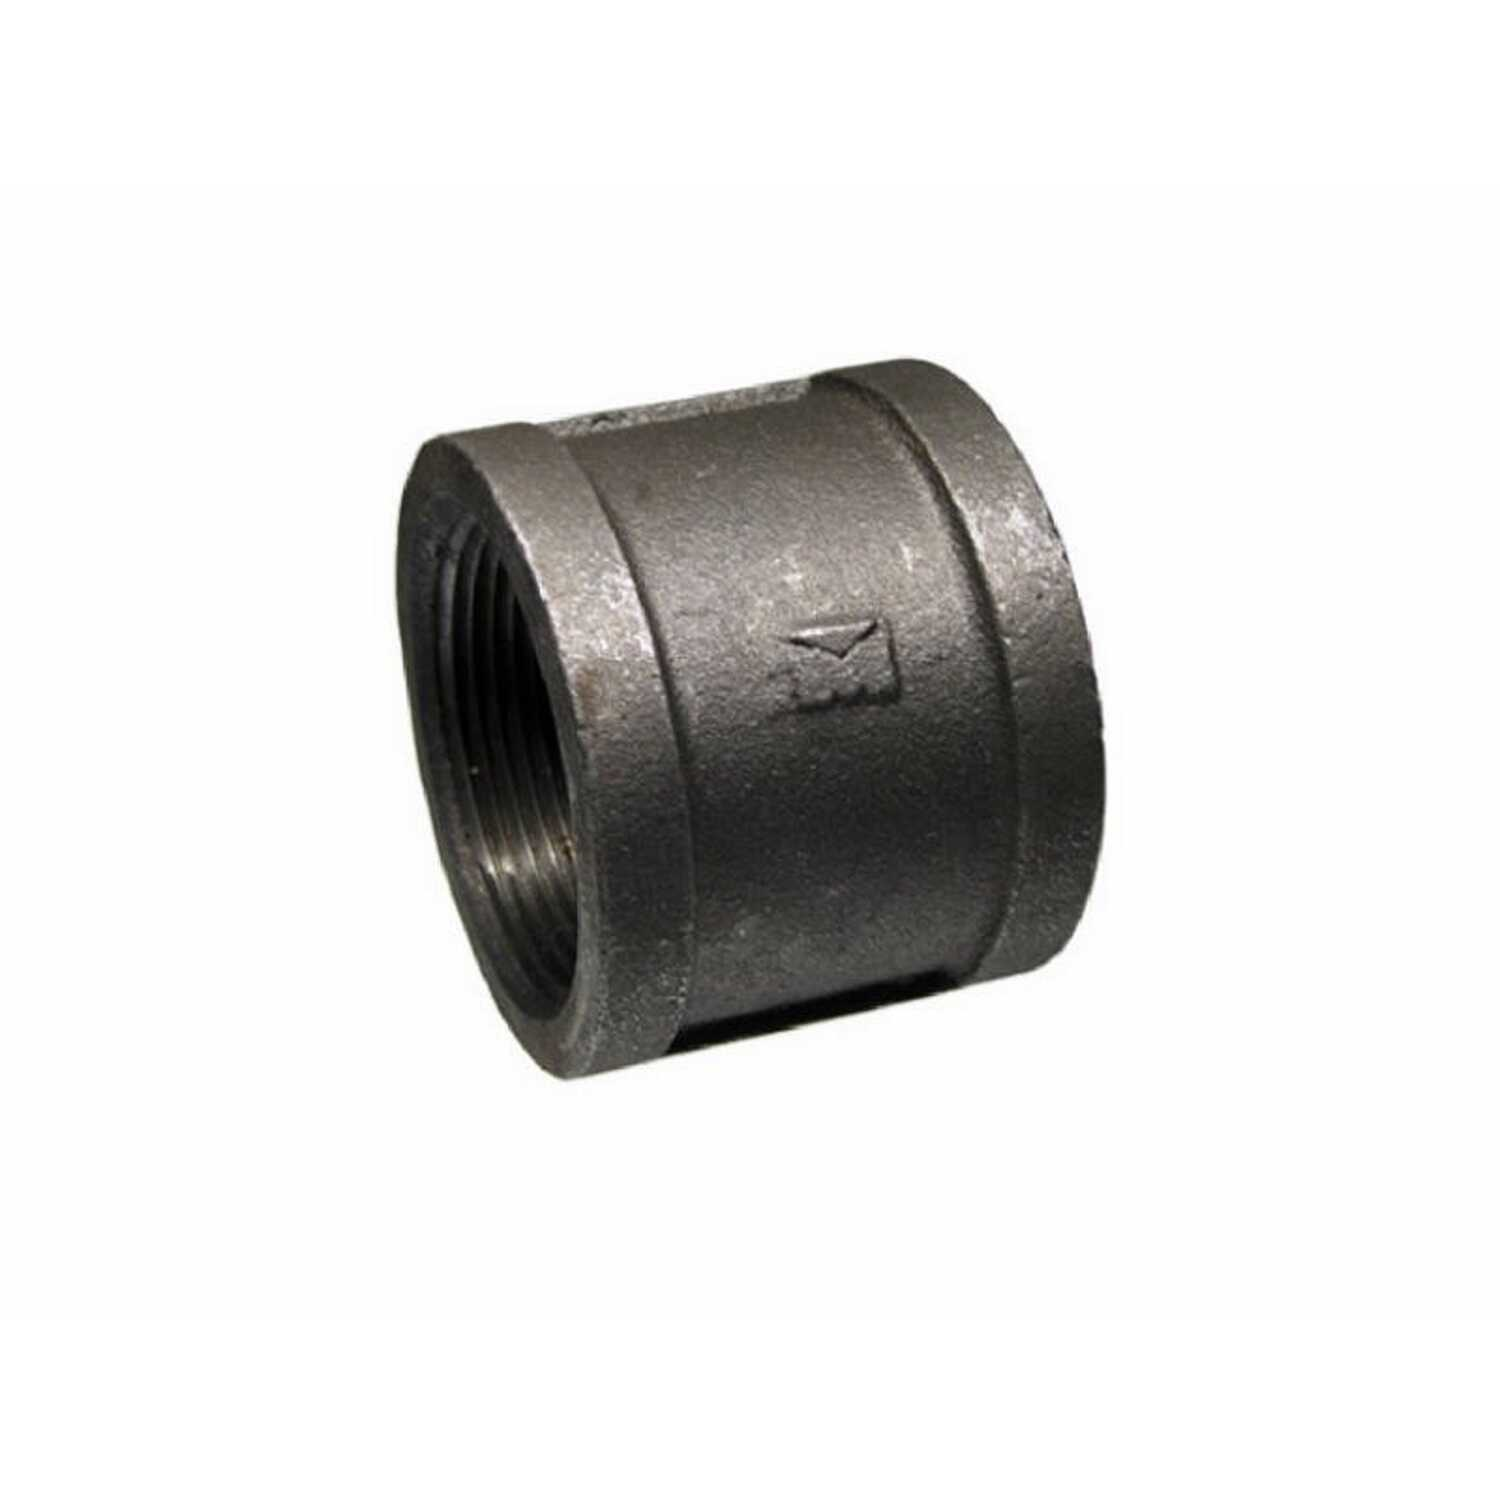 BK Products  Southland  2-1/2 in. FPT   x 2-1/2 in. Dia. FPT  Black  Malleable Iron  Coupling